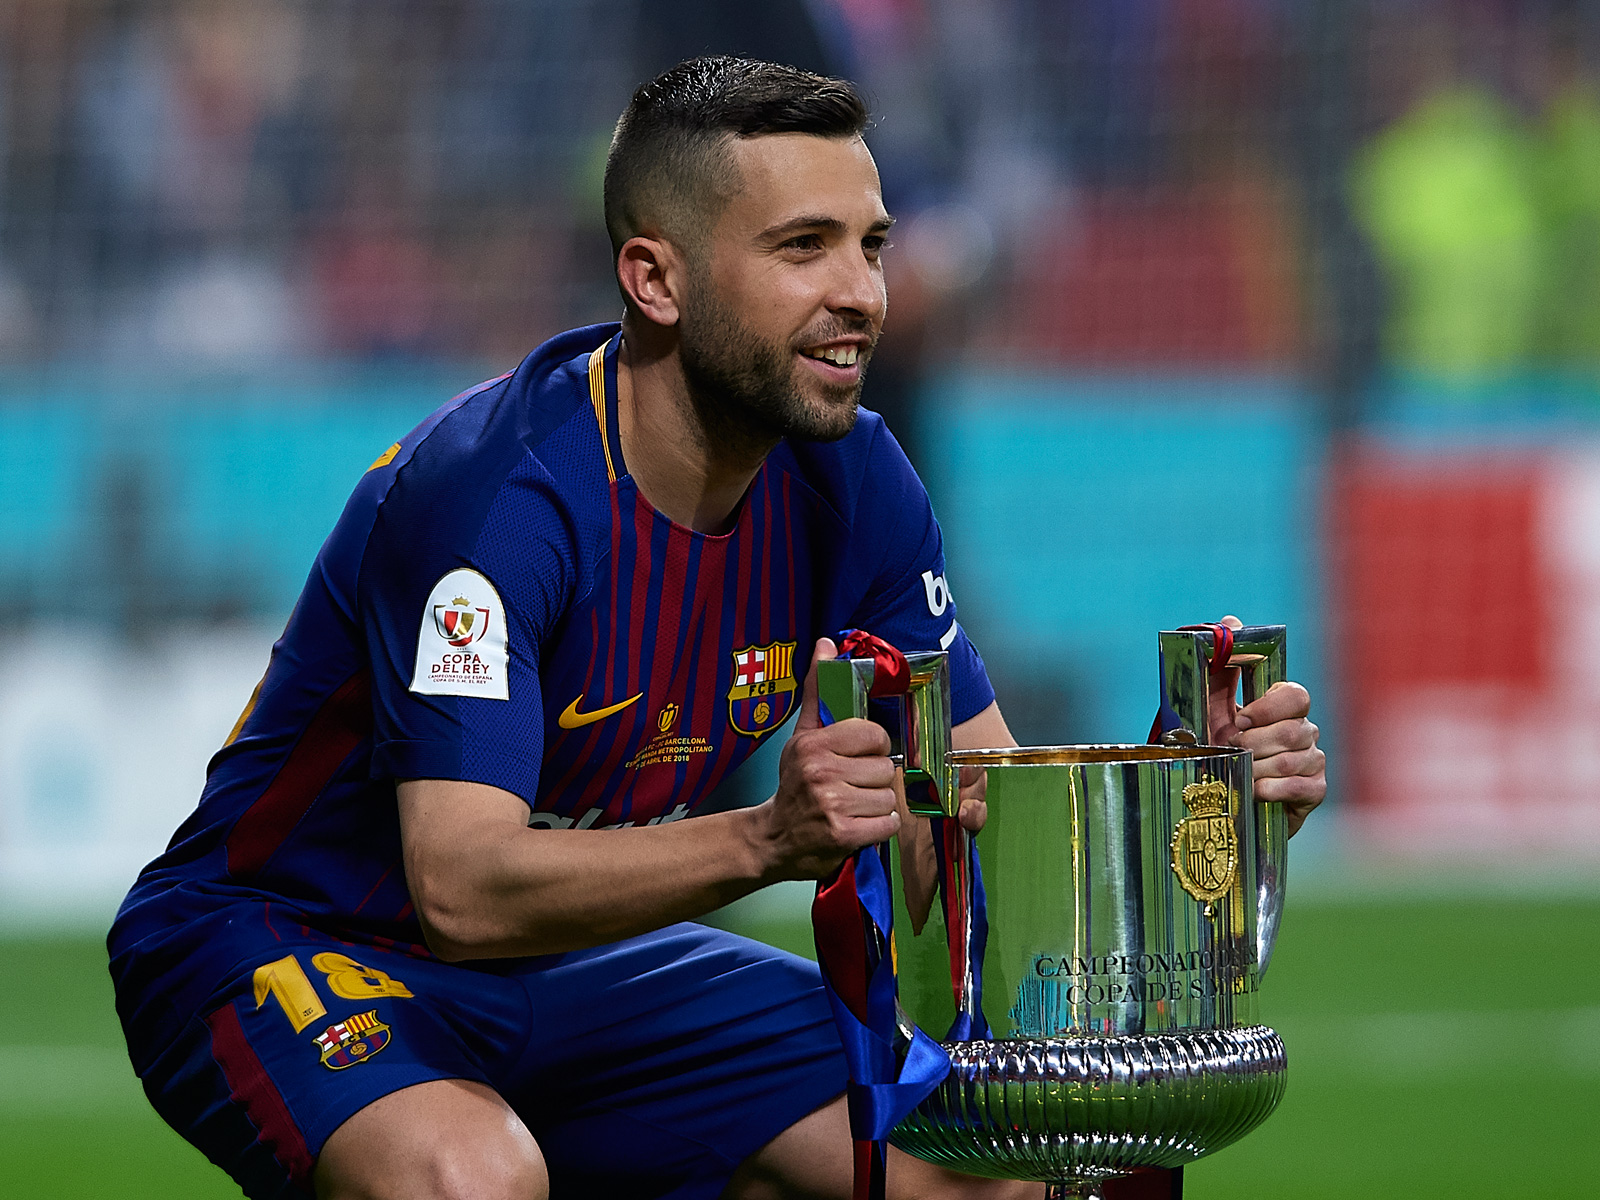 Barcelona is hoping to win the Copa del Rey again